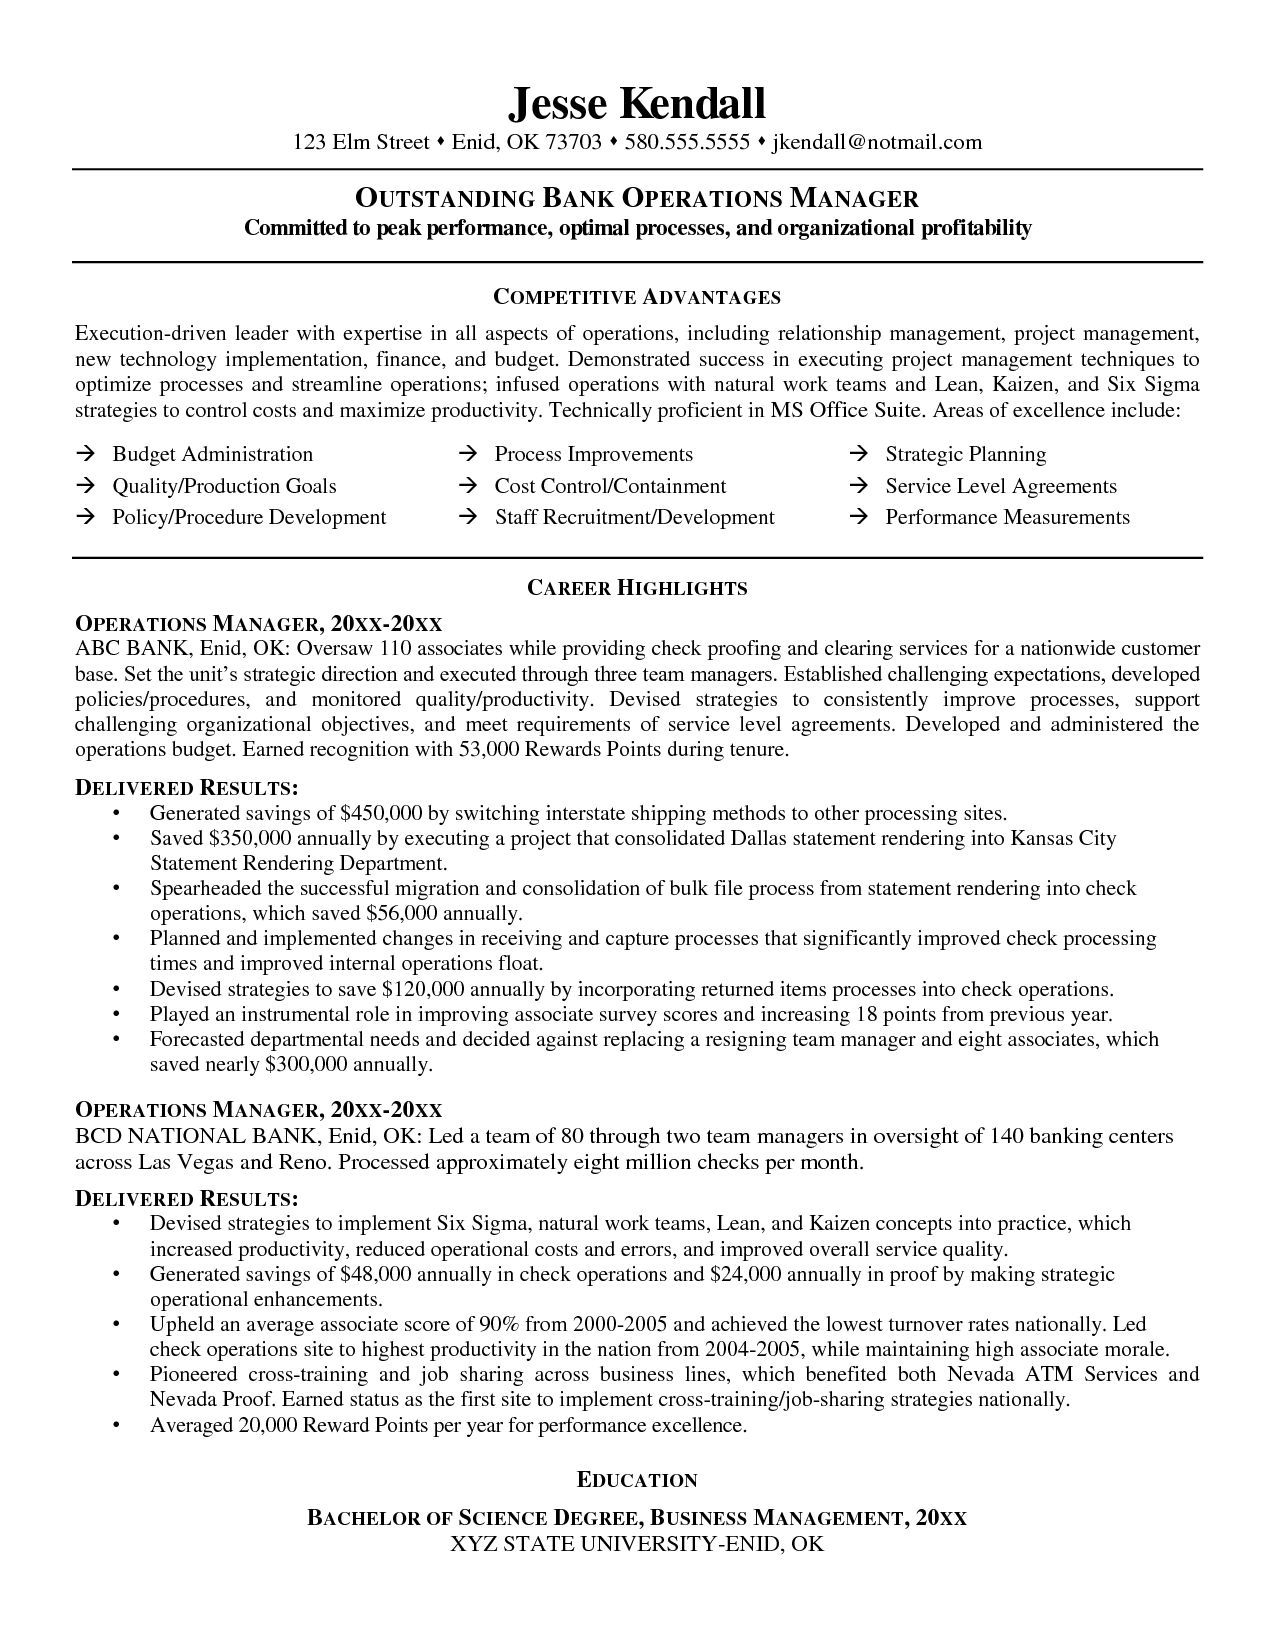 The Best Resumes Resume For Banking Operation Manager  The Best Estimate